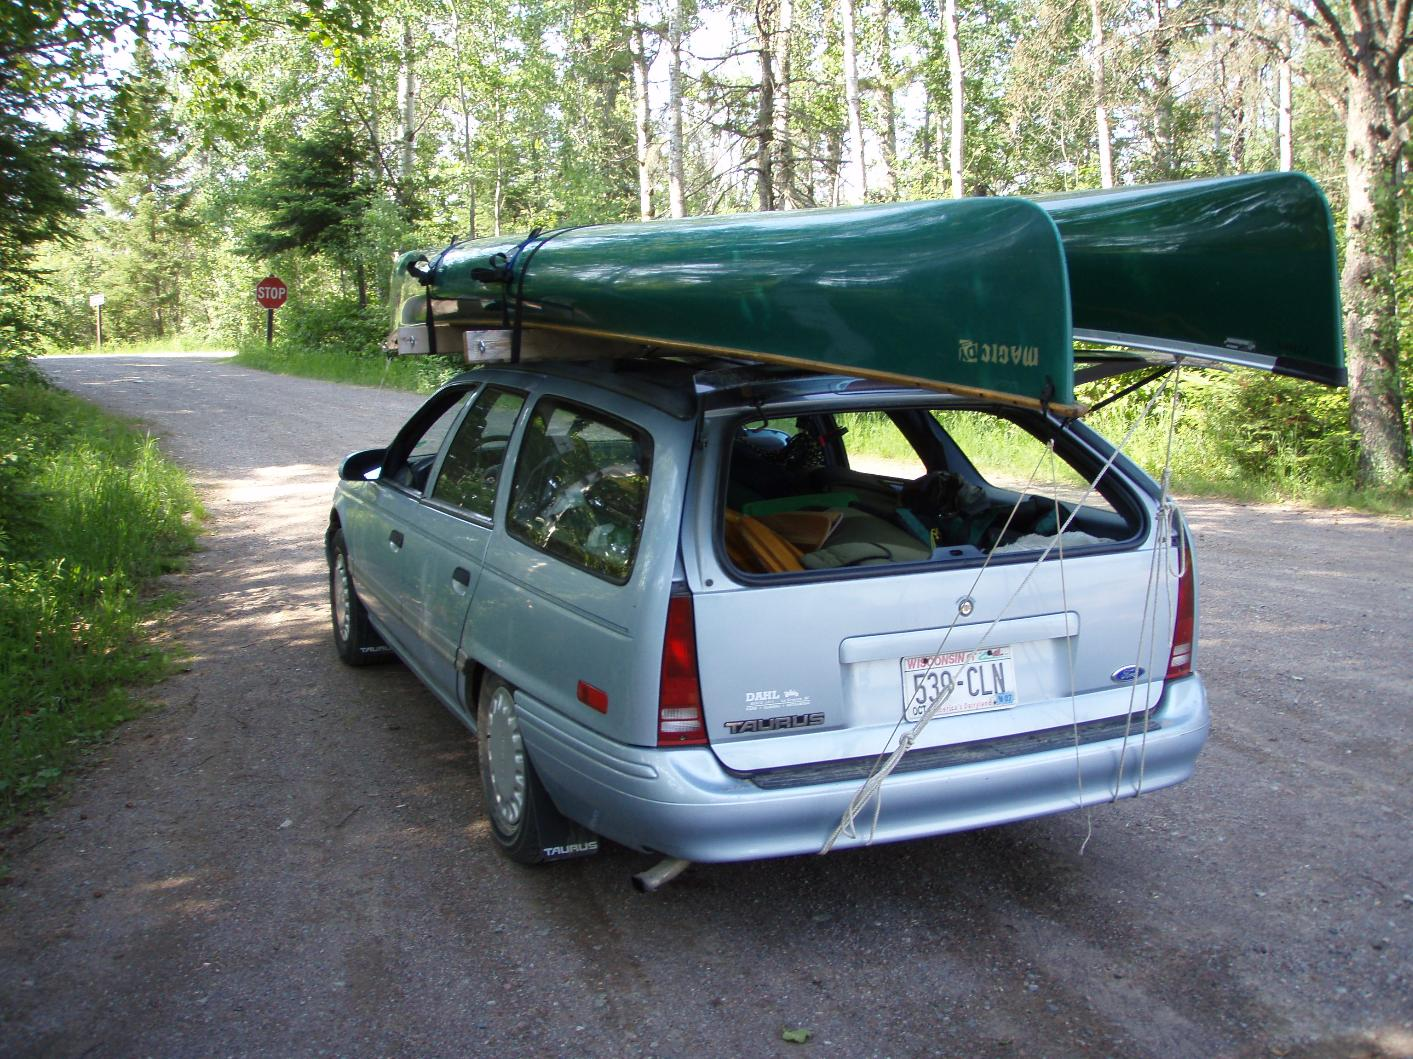 BWCA 2x4 Roof Rack Boundary Waters Listening Point   General Discussion